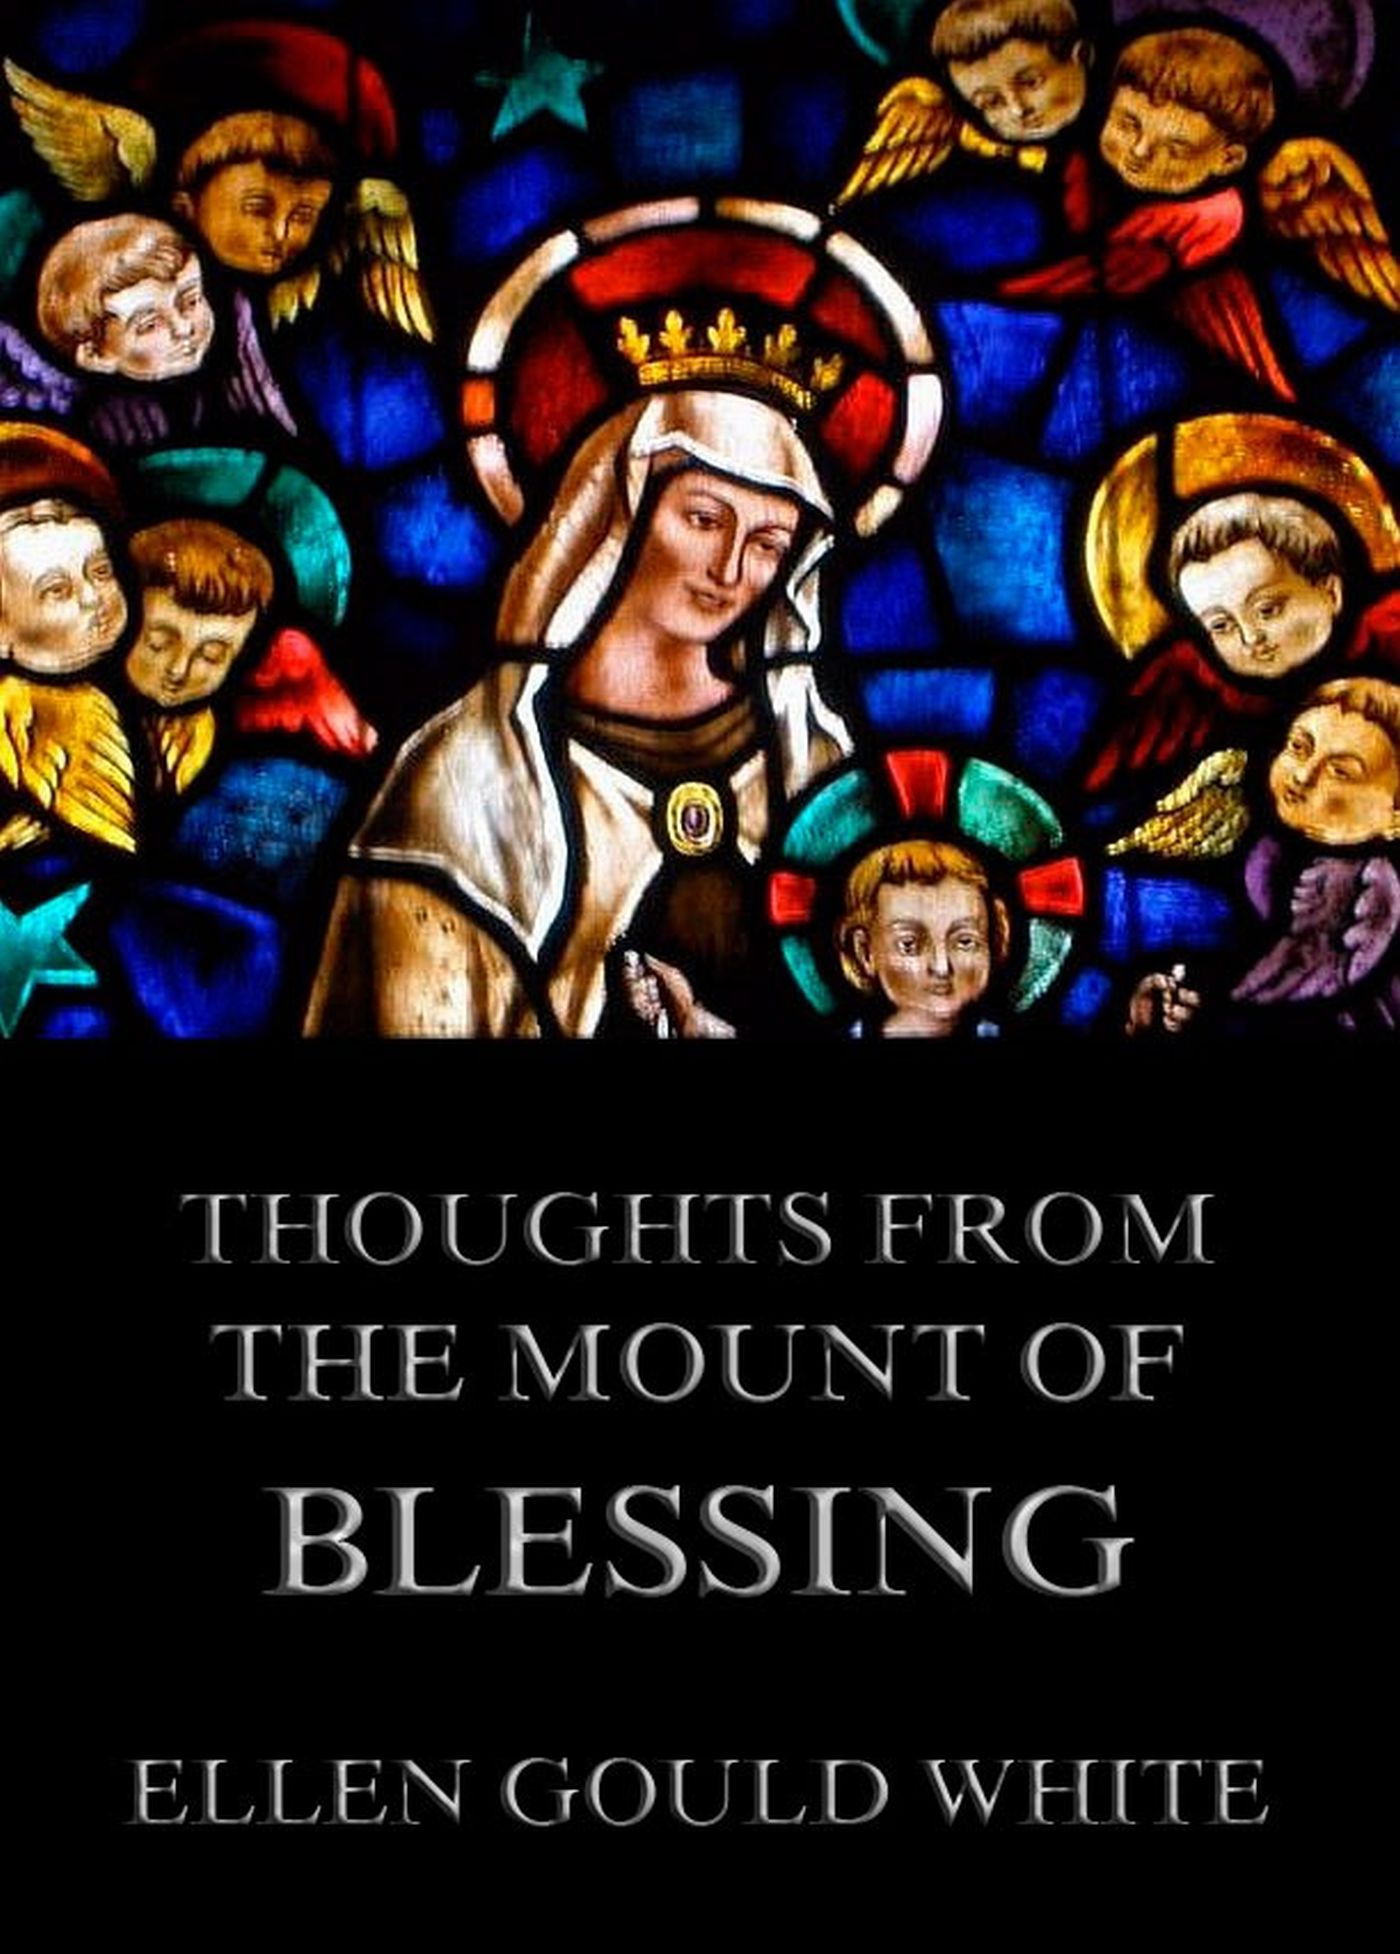 Ellen Gould White Thoughts from the Mount Of Blessing renata lombard thoughts from the heart